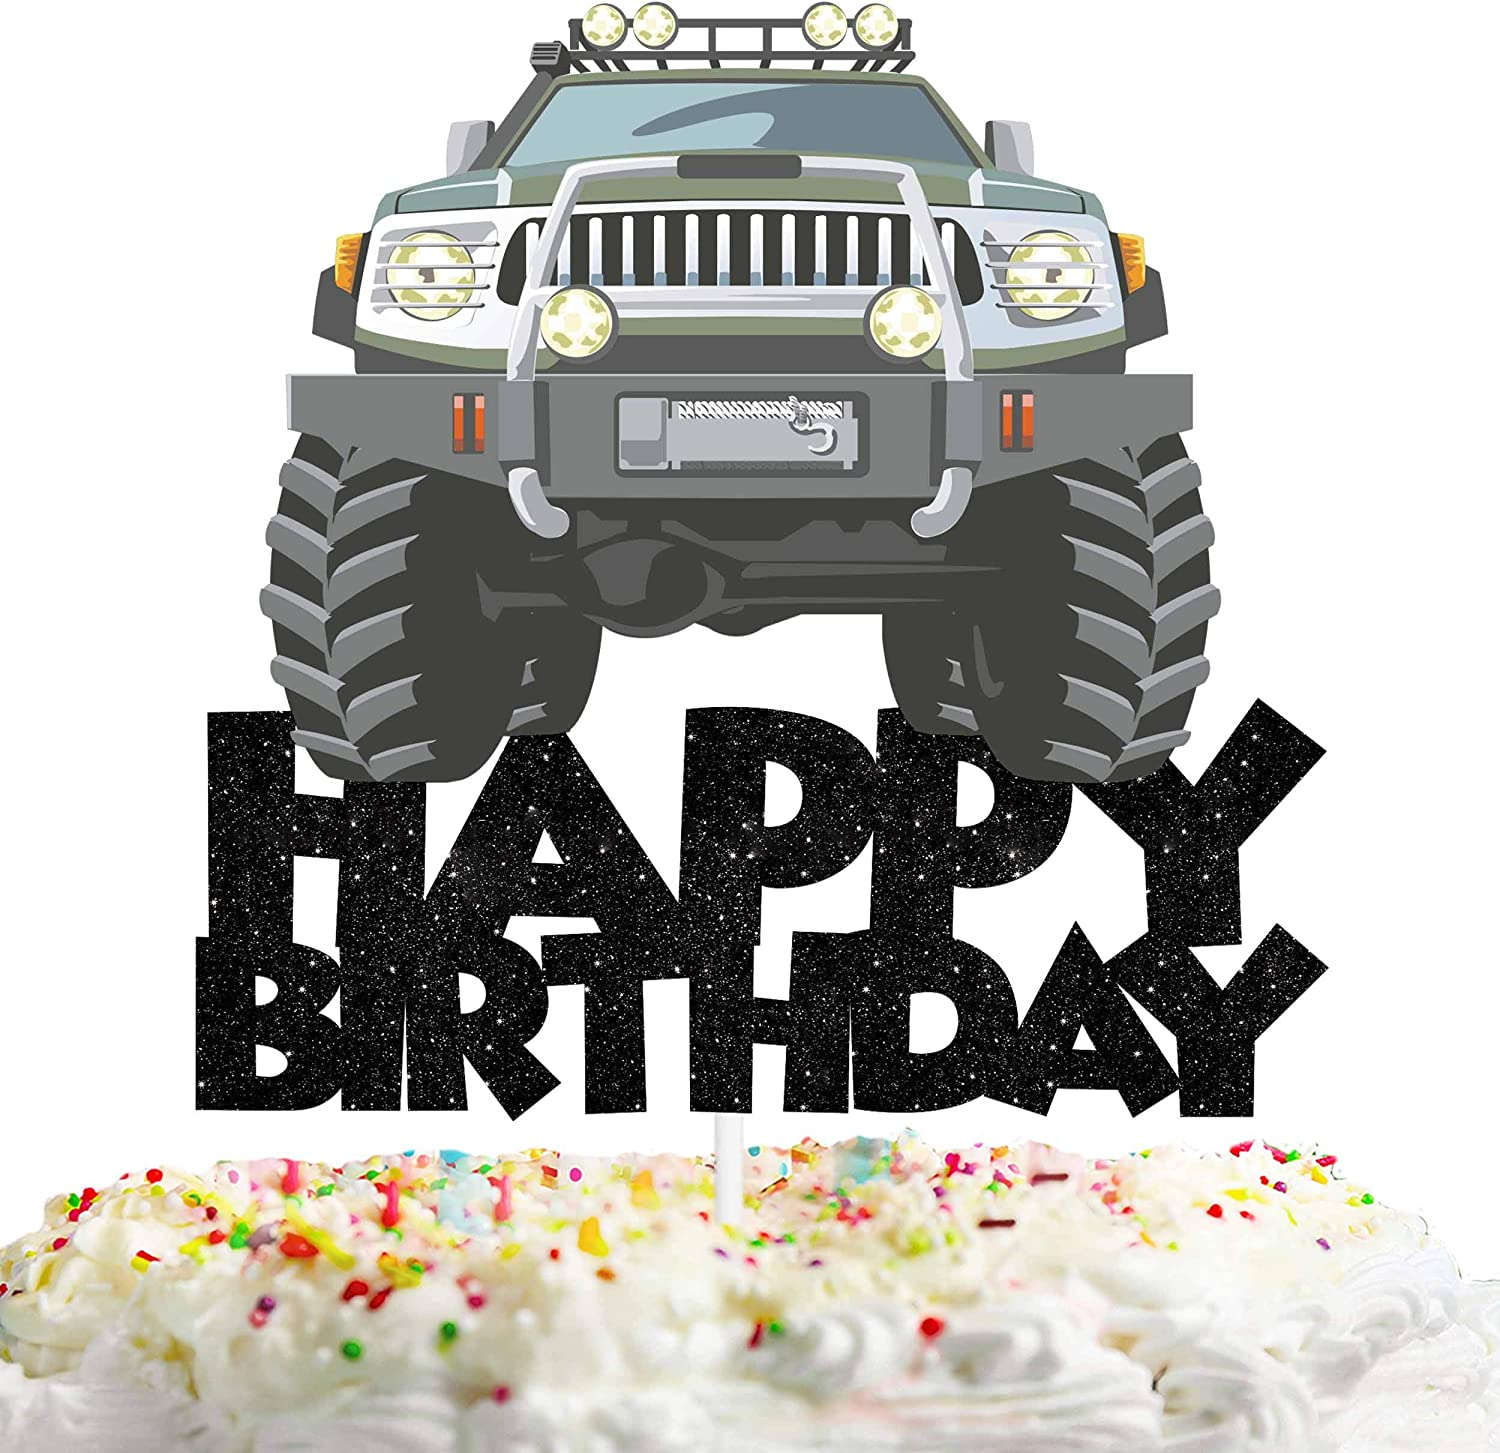 Road Vehicle Happy Birthday Cake Topper Decorations with Car for Truck Theme Picks for Kids Birthday Party Decor Supplies